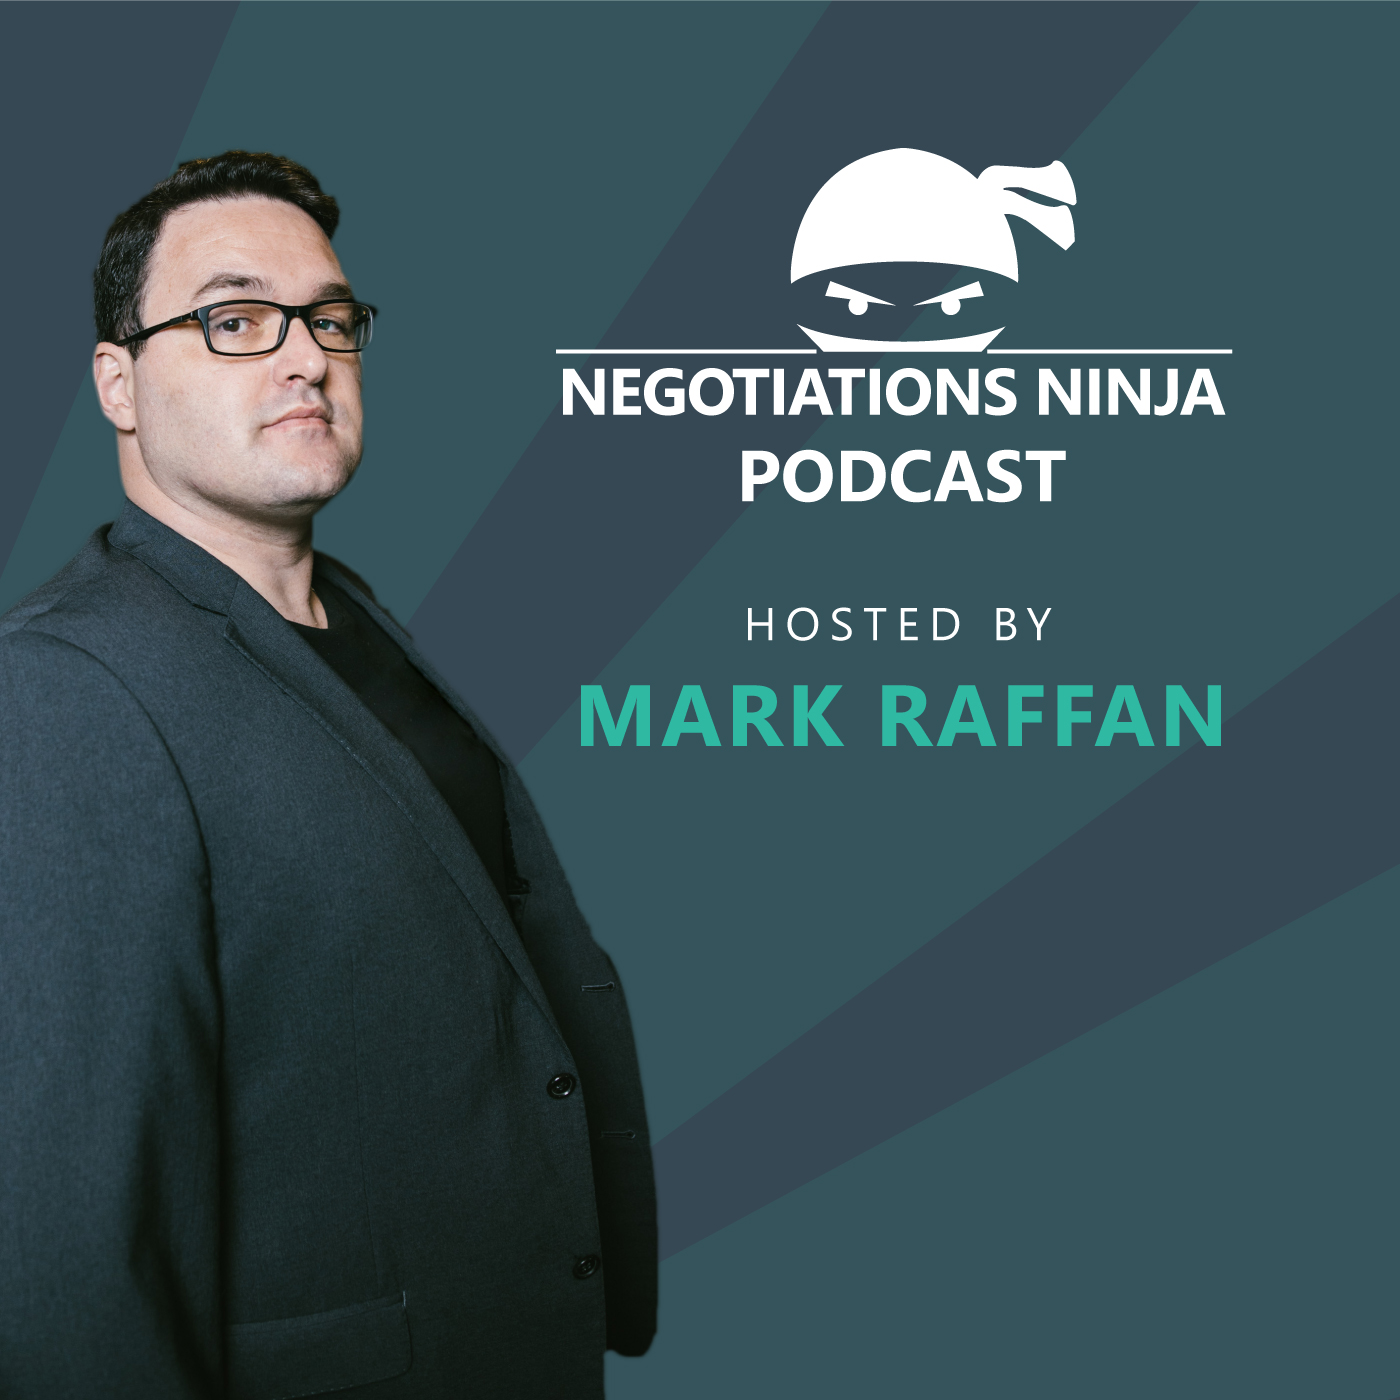 Cross Over Episode - Tim Schigel on Negotiation Ninja with Mark Raffan